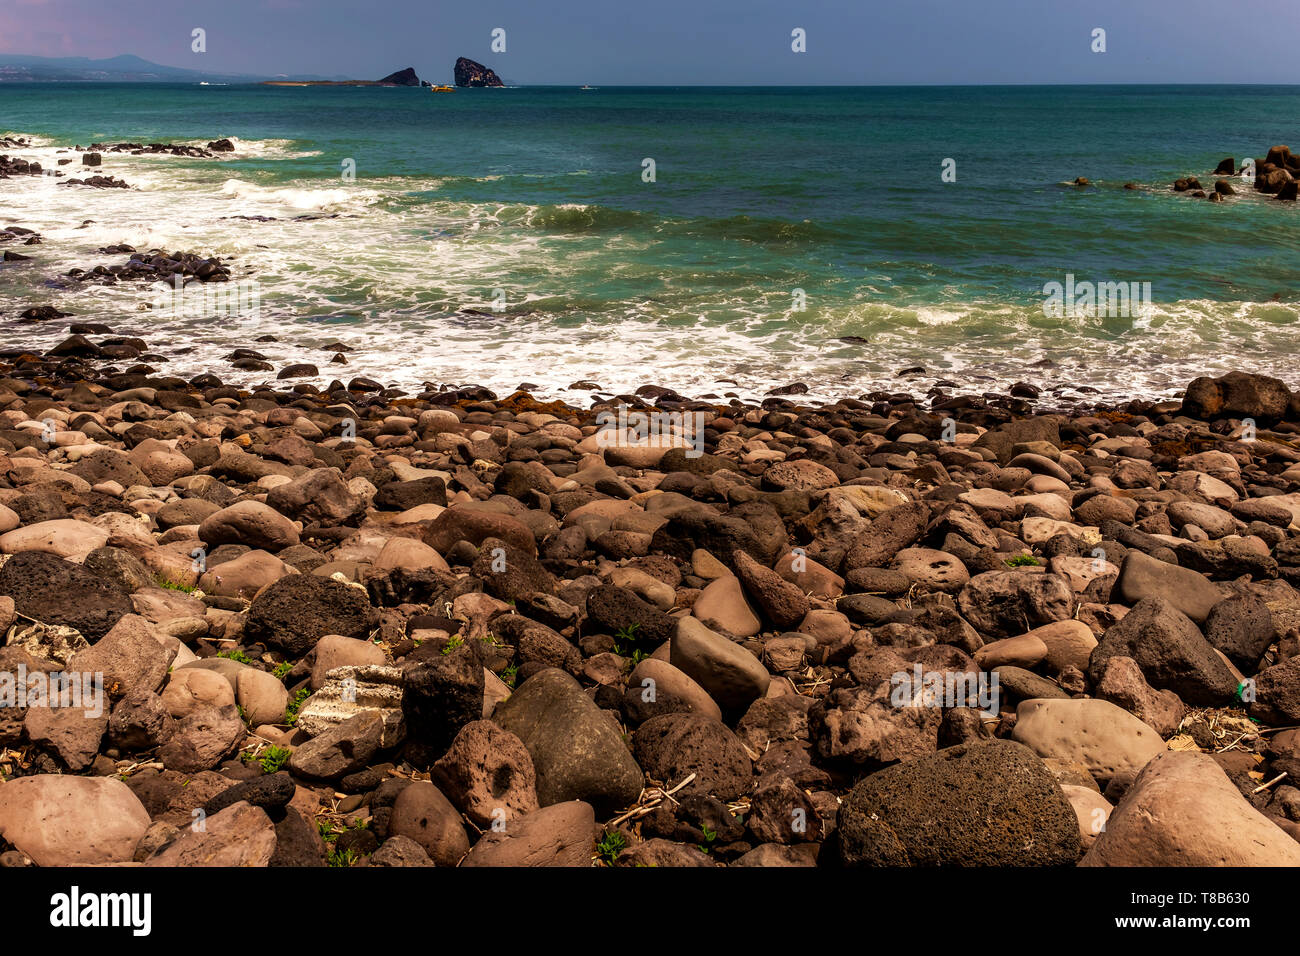 fragments of stons in the beach, Jeju, South Korea - Stock Image